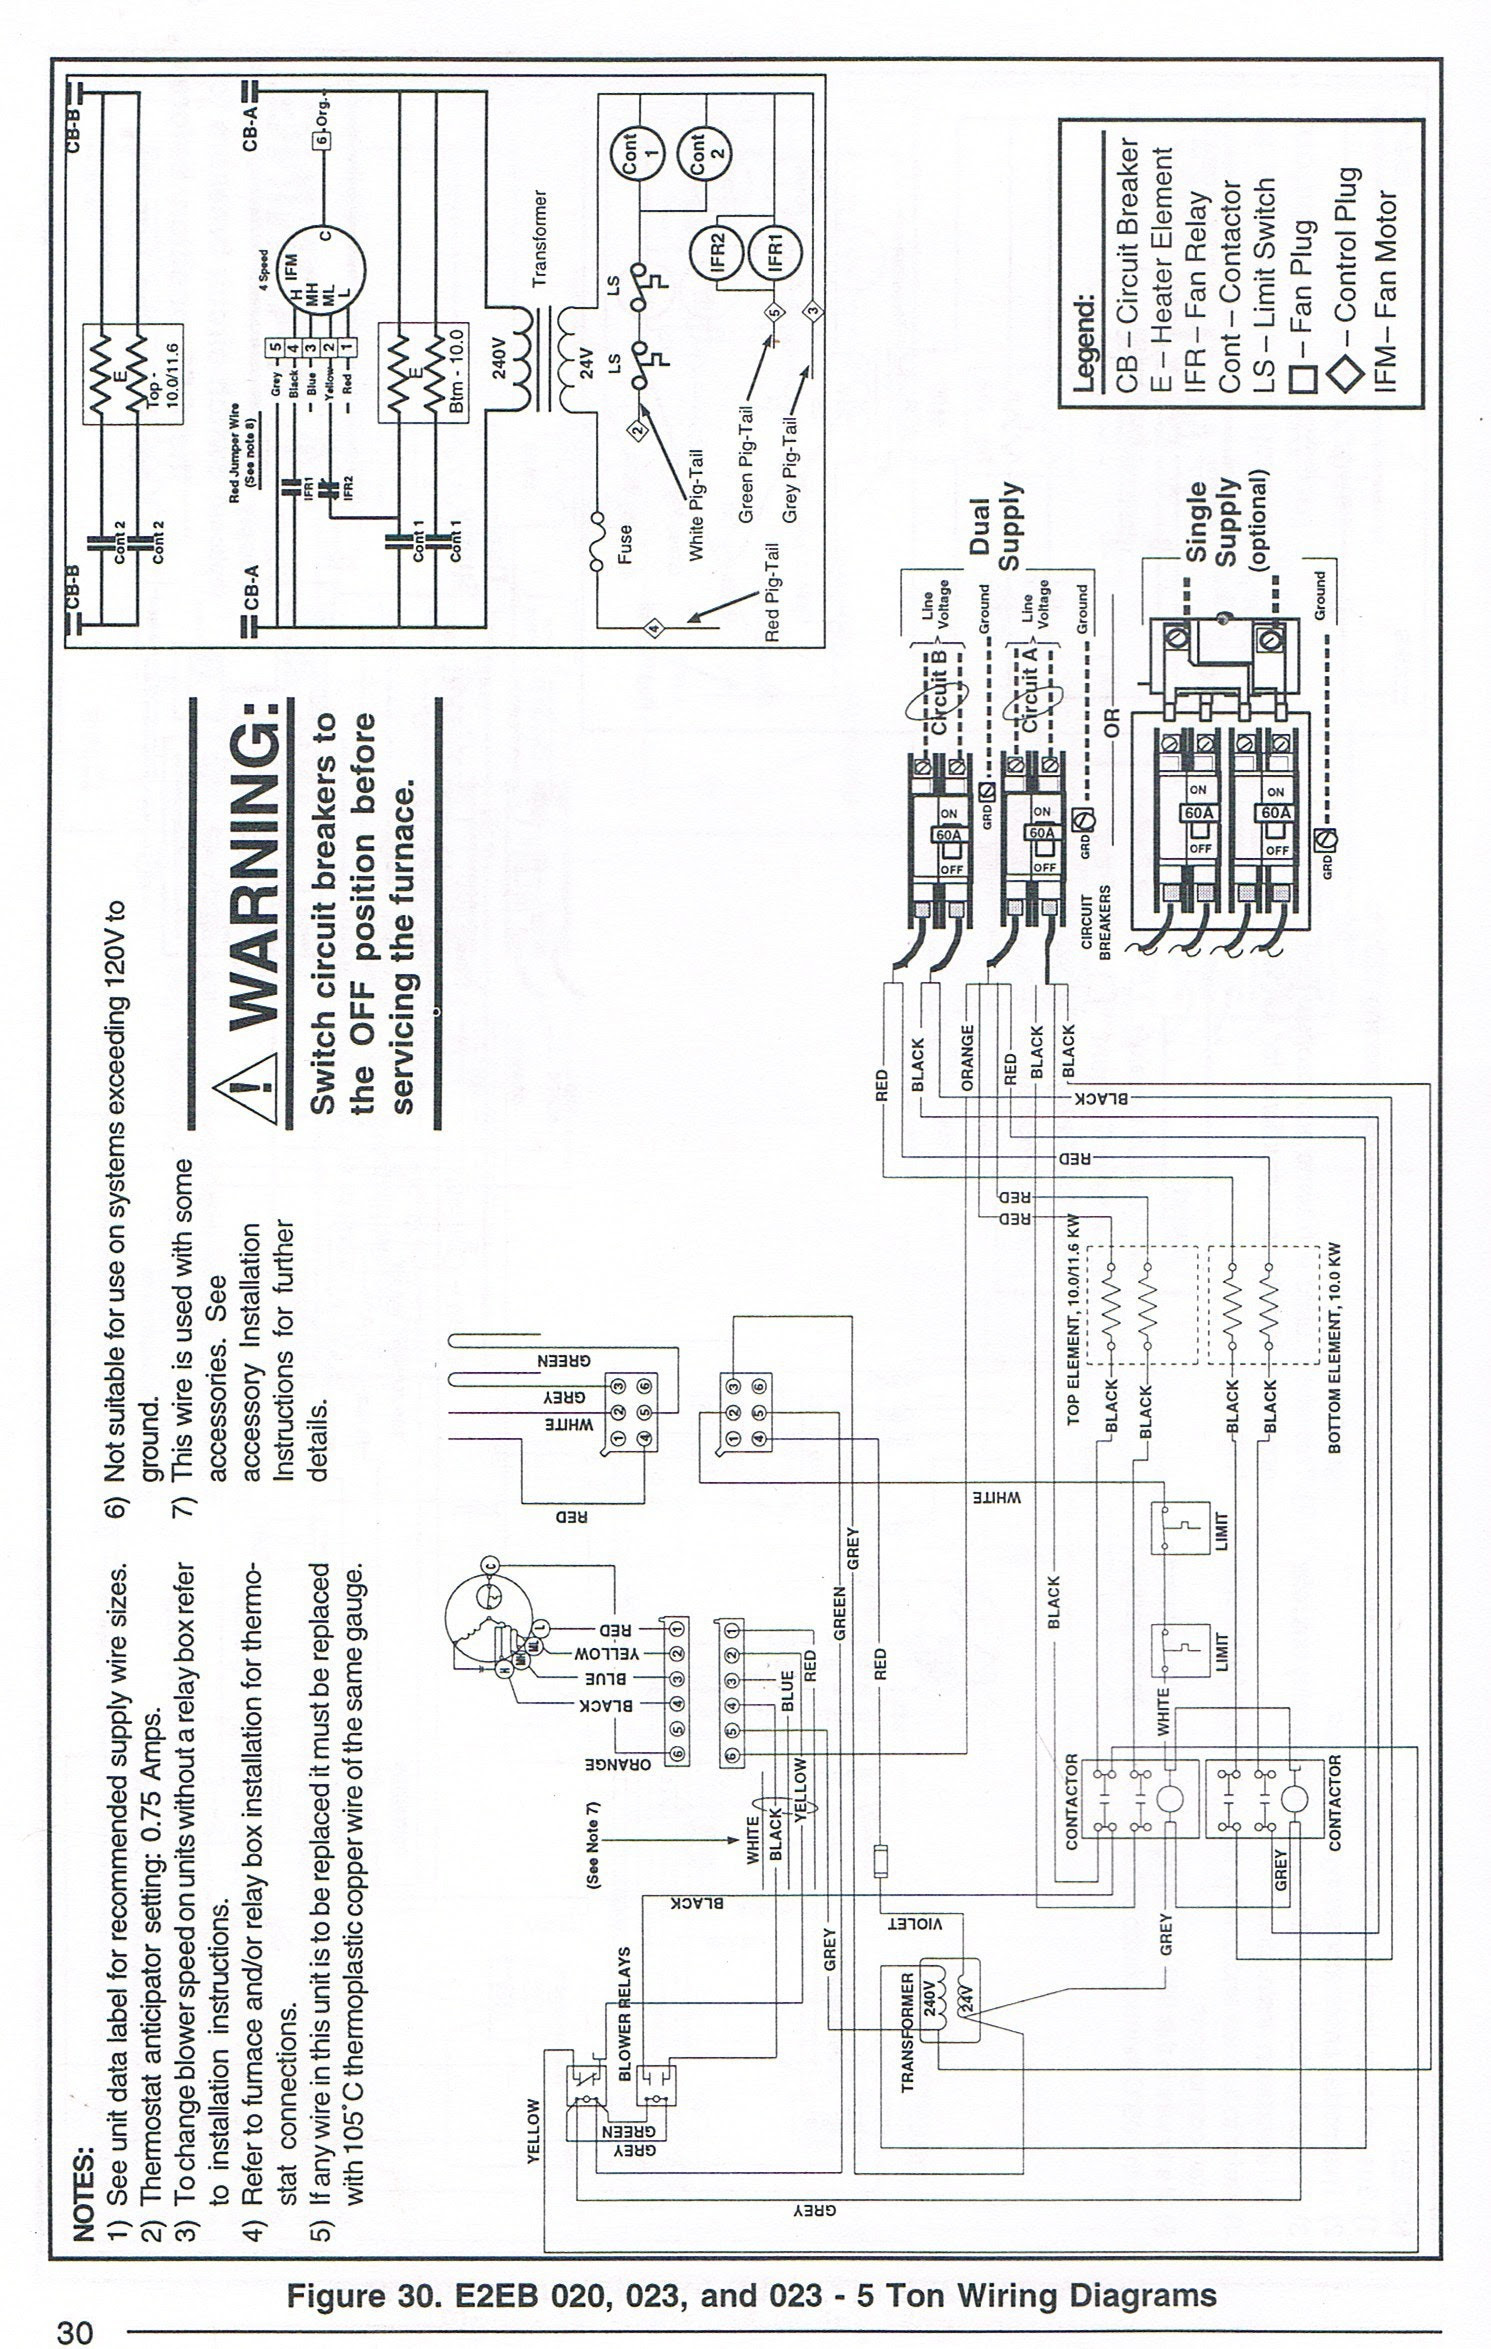 Thermostat Wiring Diagram For Electric Furnace from lh5.googleusercontent.com